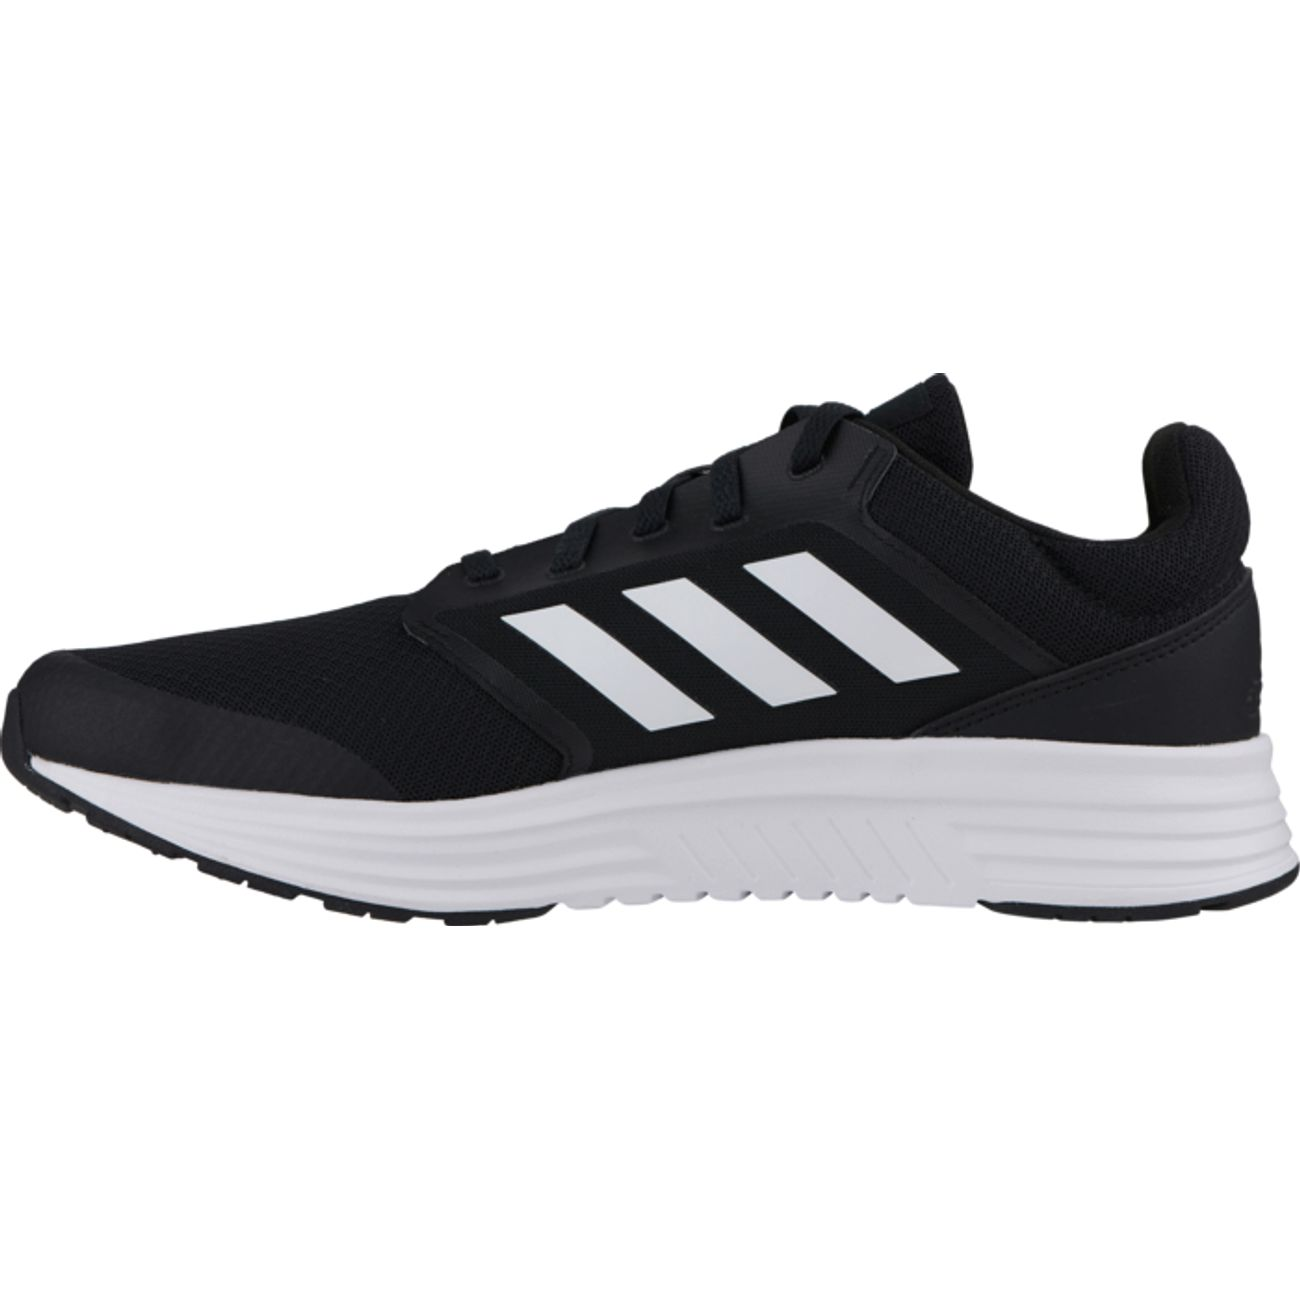 CHAUSSURES BASSES running homme ADIDAS GALAXY 5 M